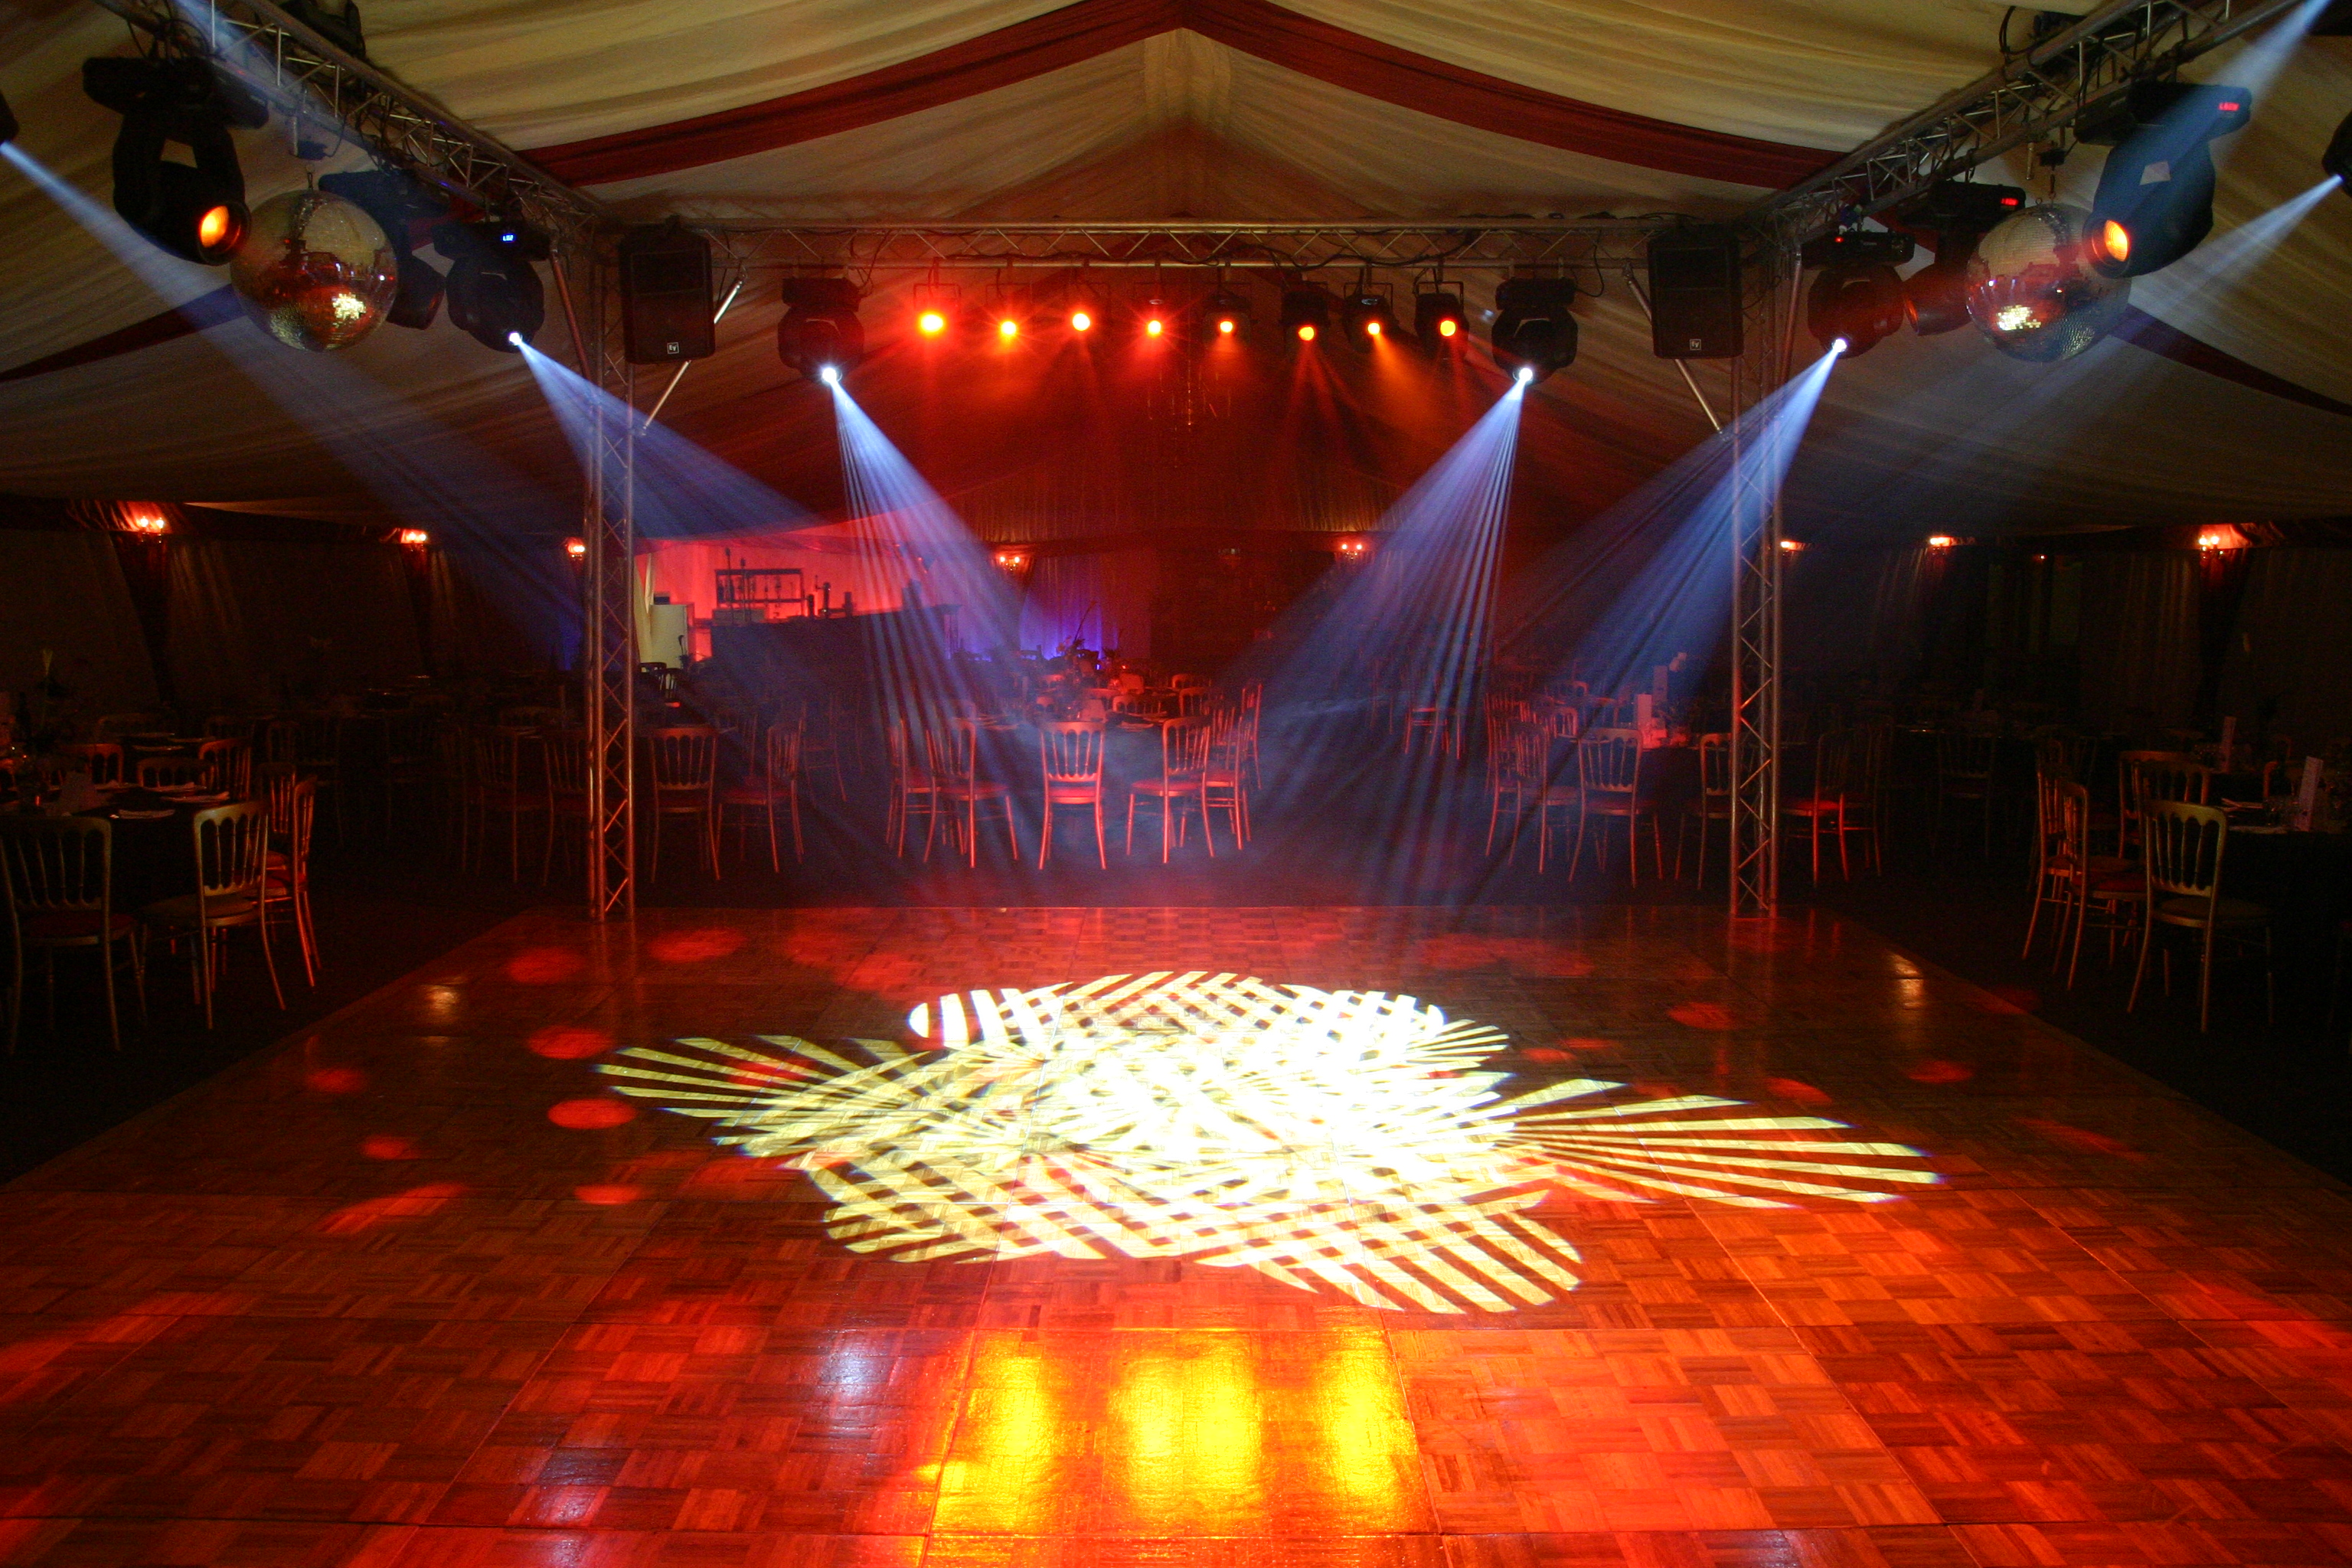 Dance floor photos full hd pictures for 1234 get on the dance floor full hd video download